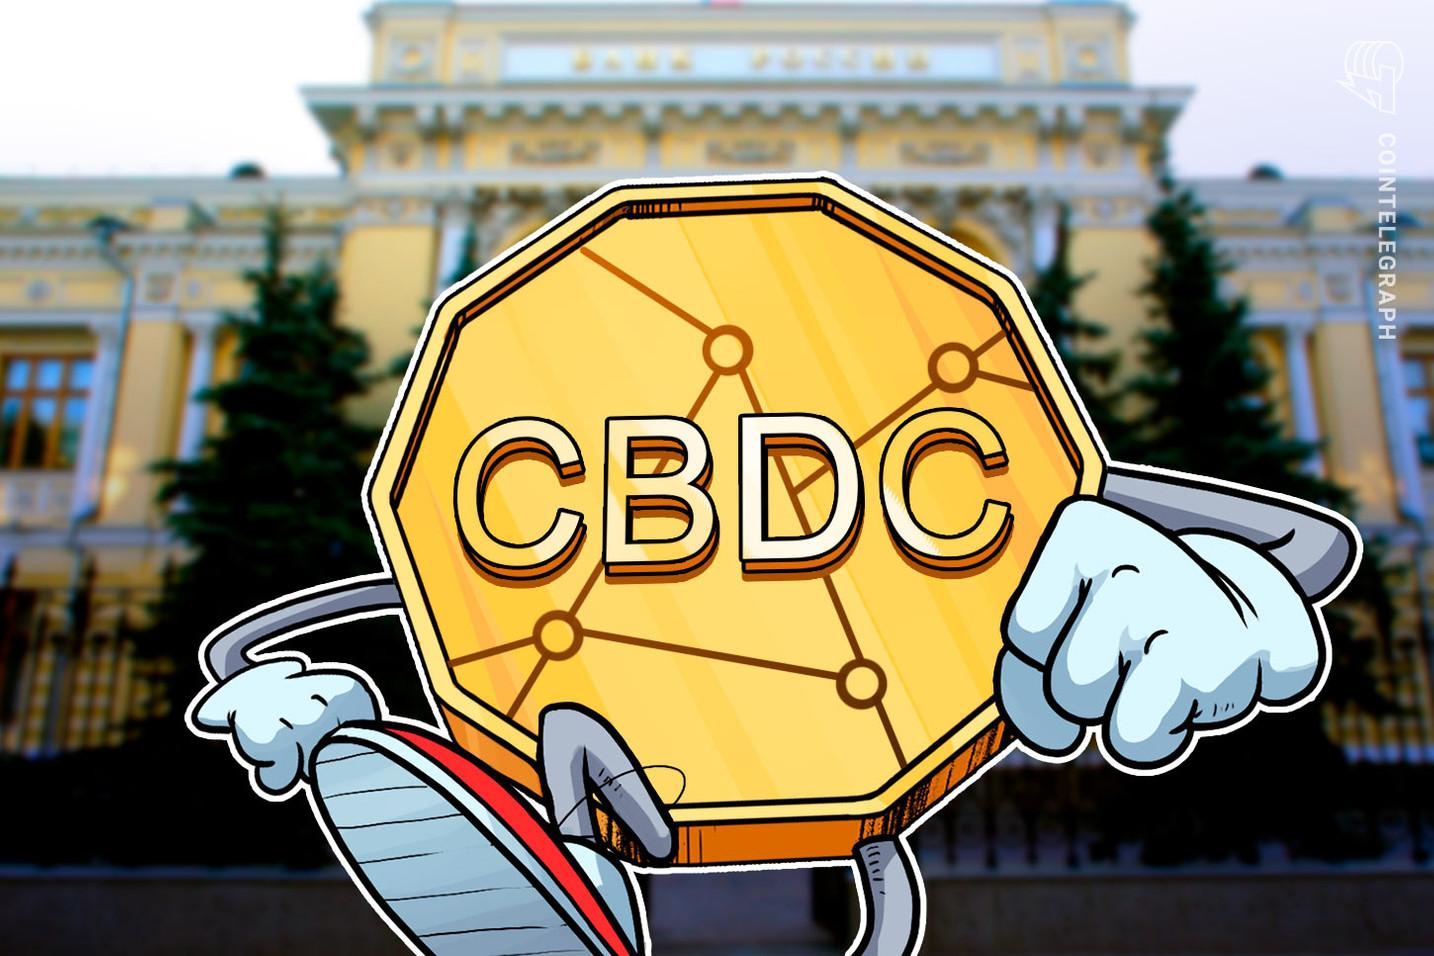 Russia's central bank says the pandemic has accelerated regulators' interest in CBDCs